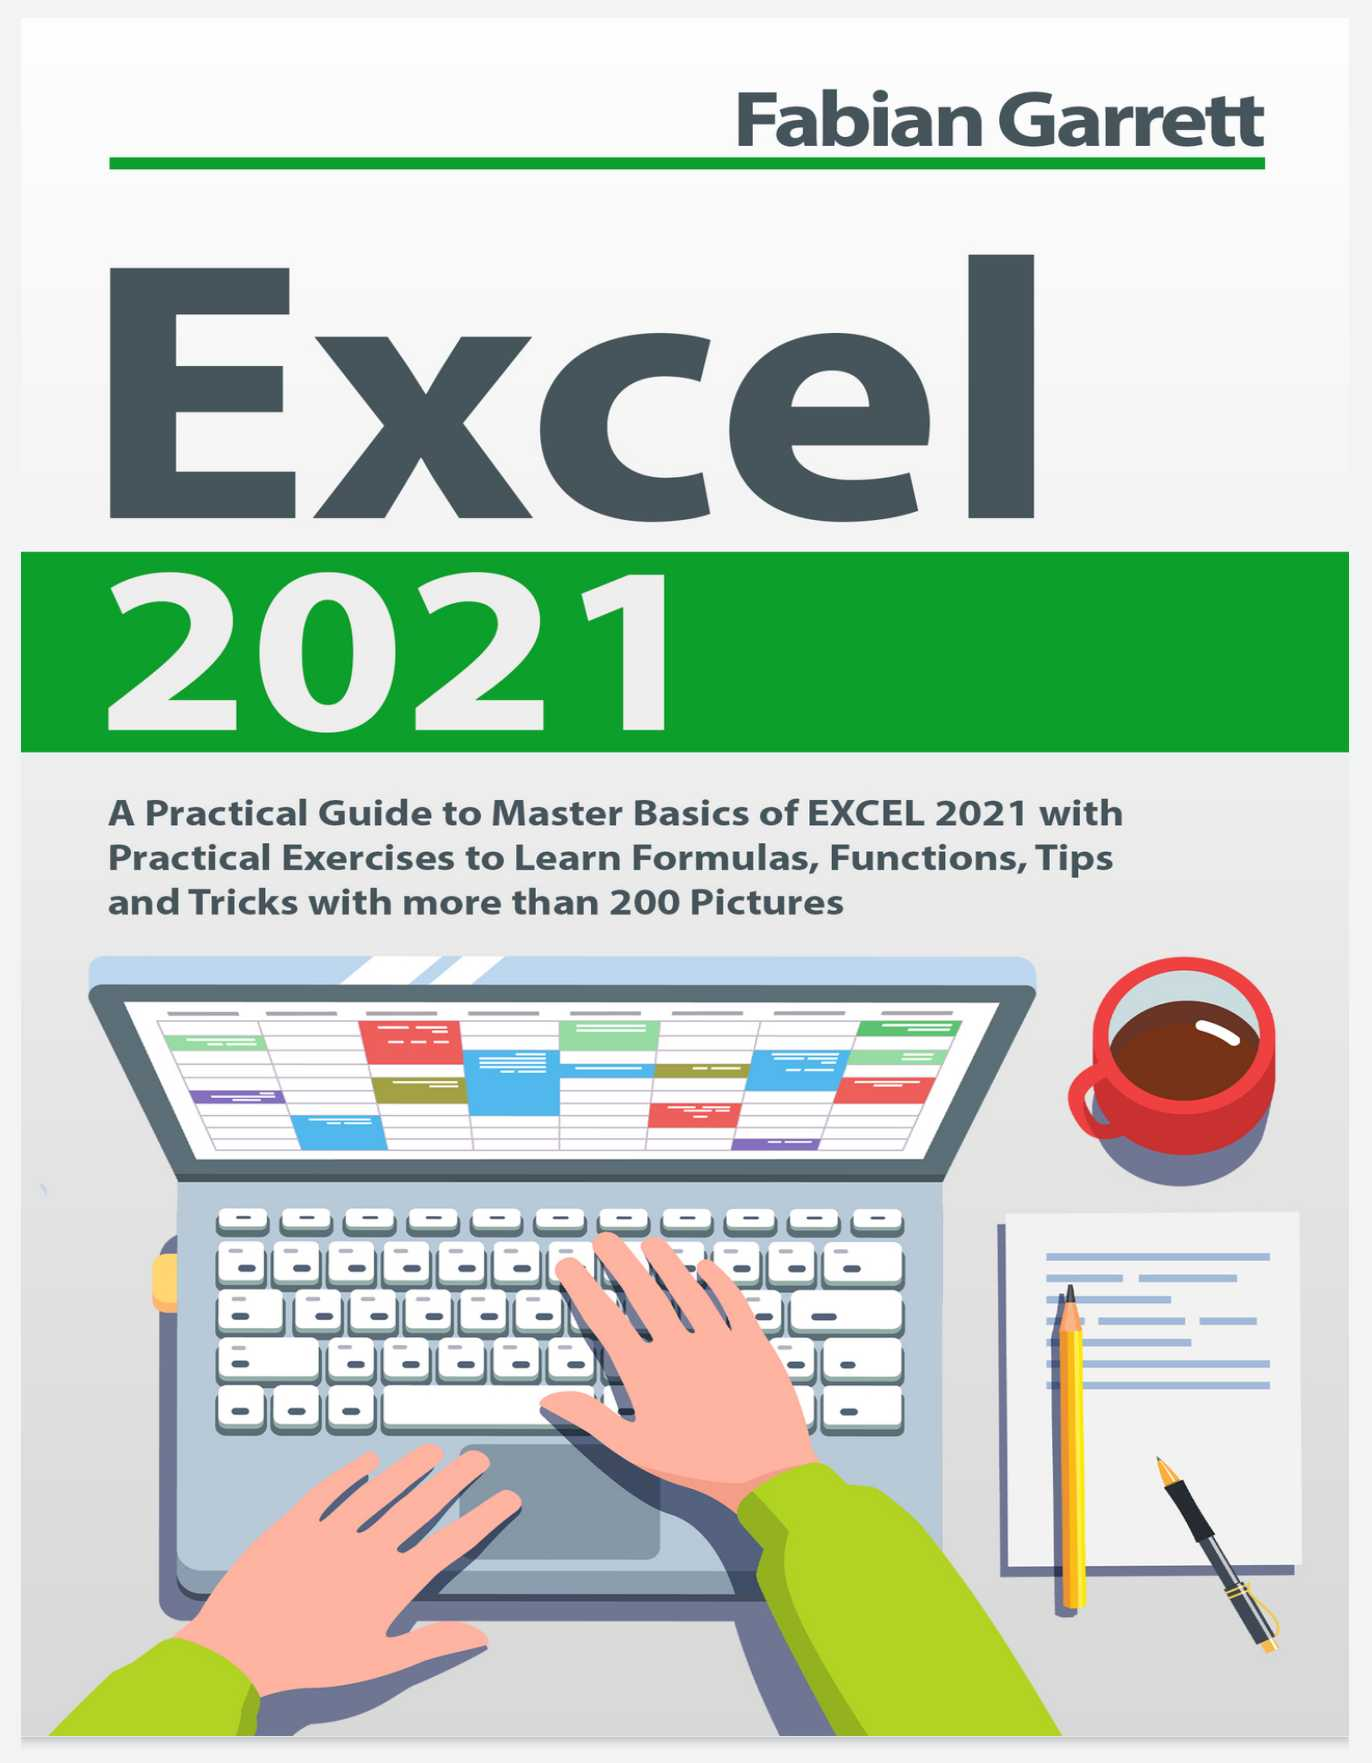 Excel 2021: A Practical Guide to Master Basics of EXCEL 2021